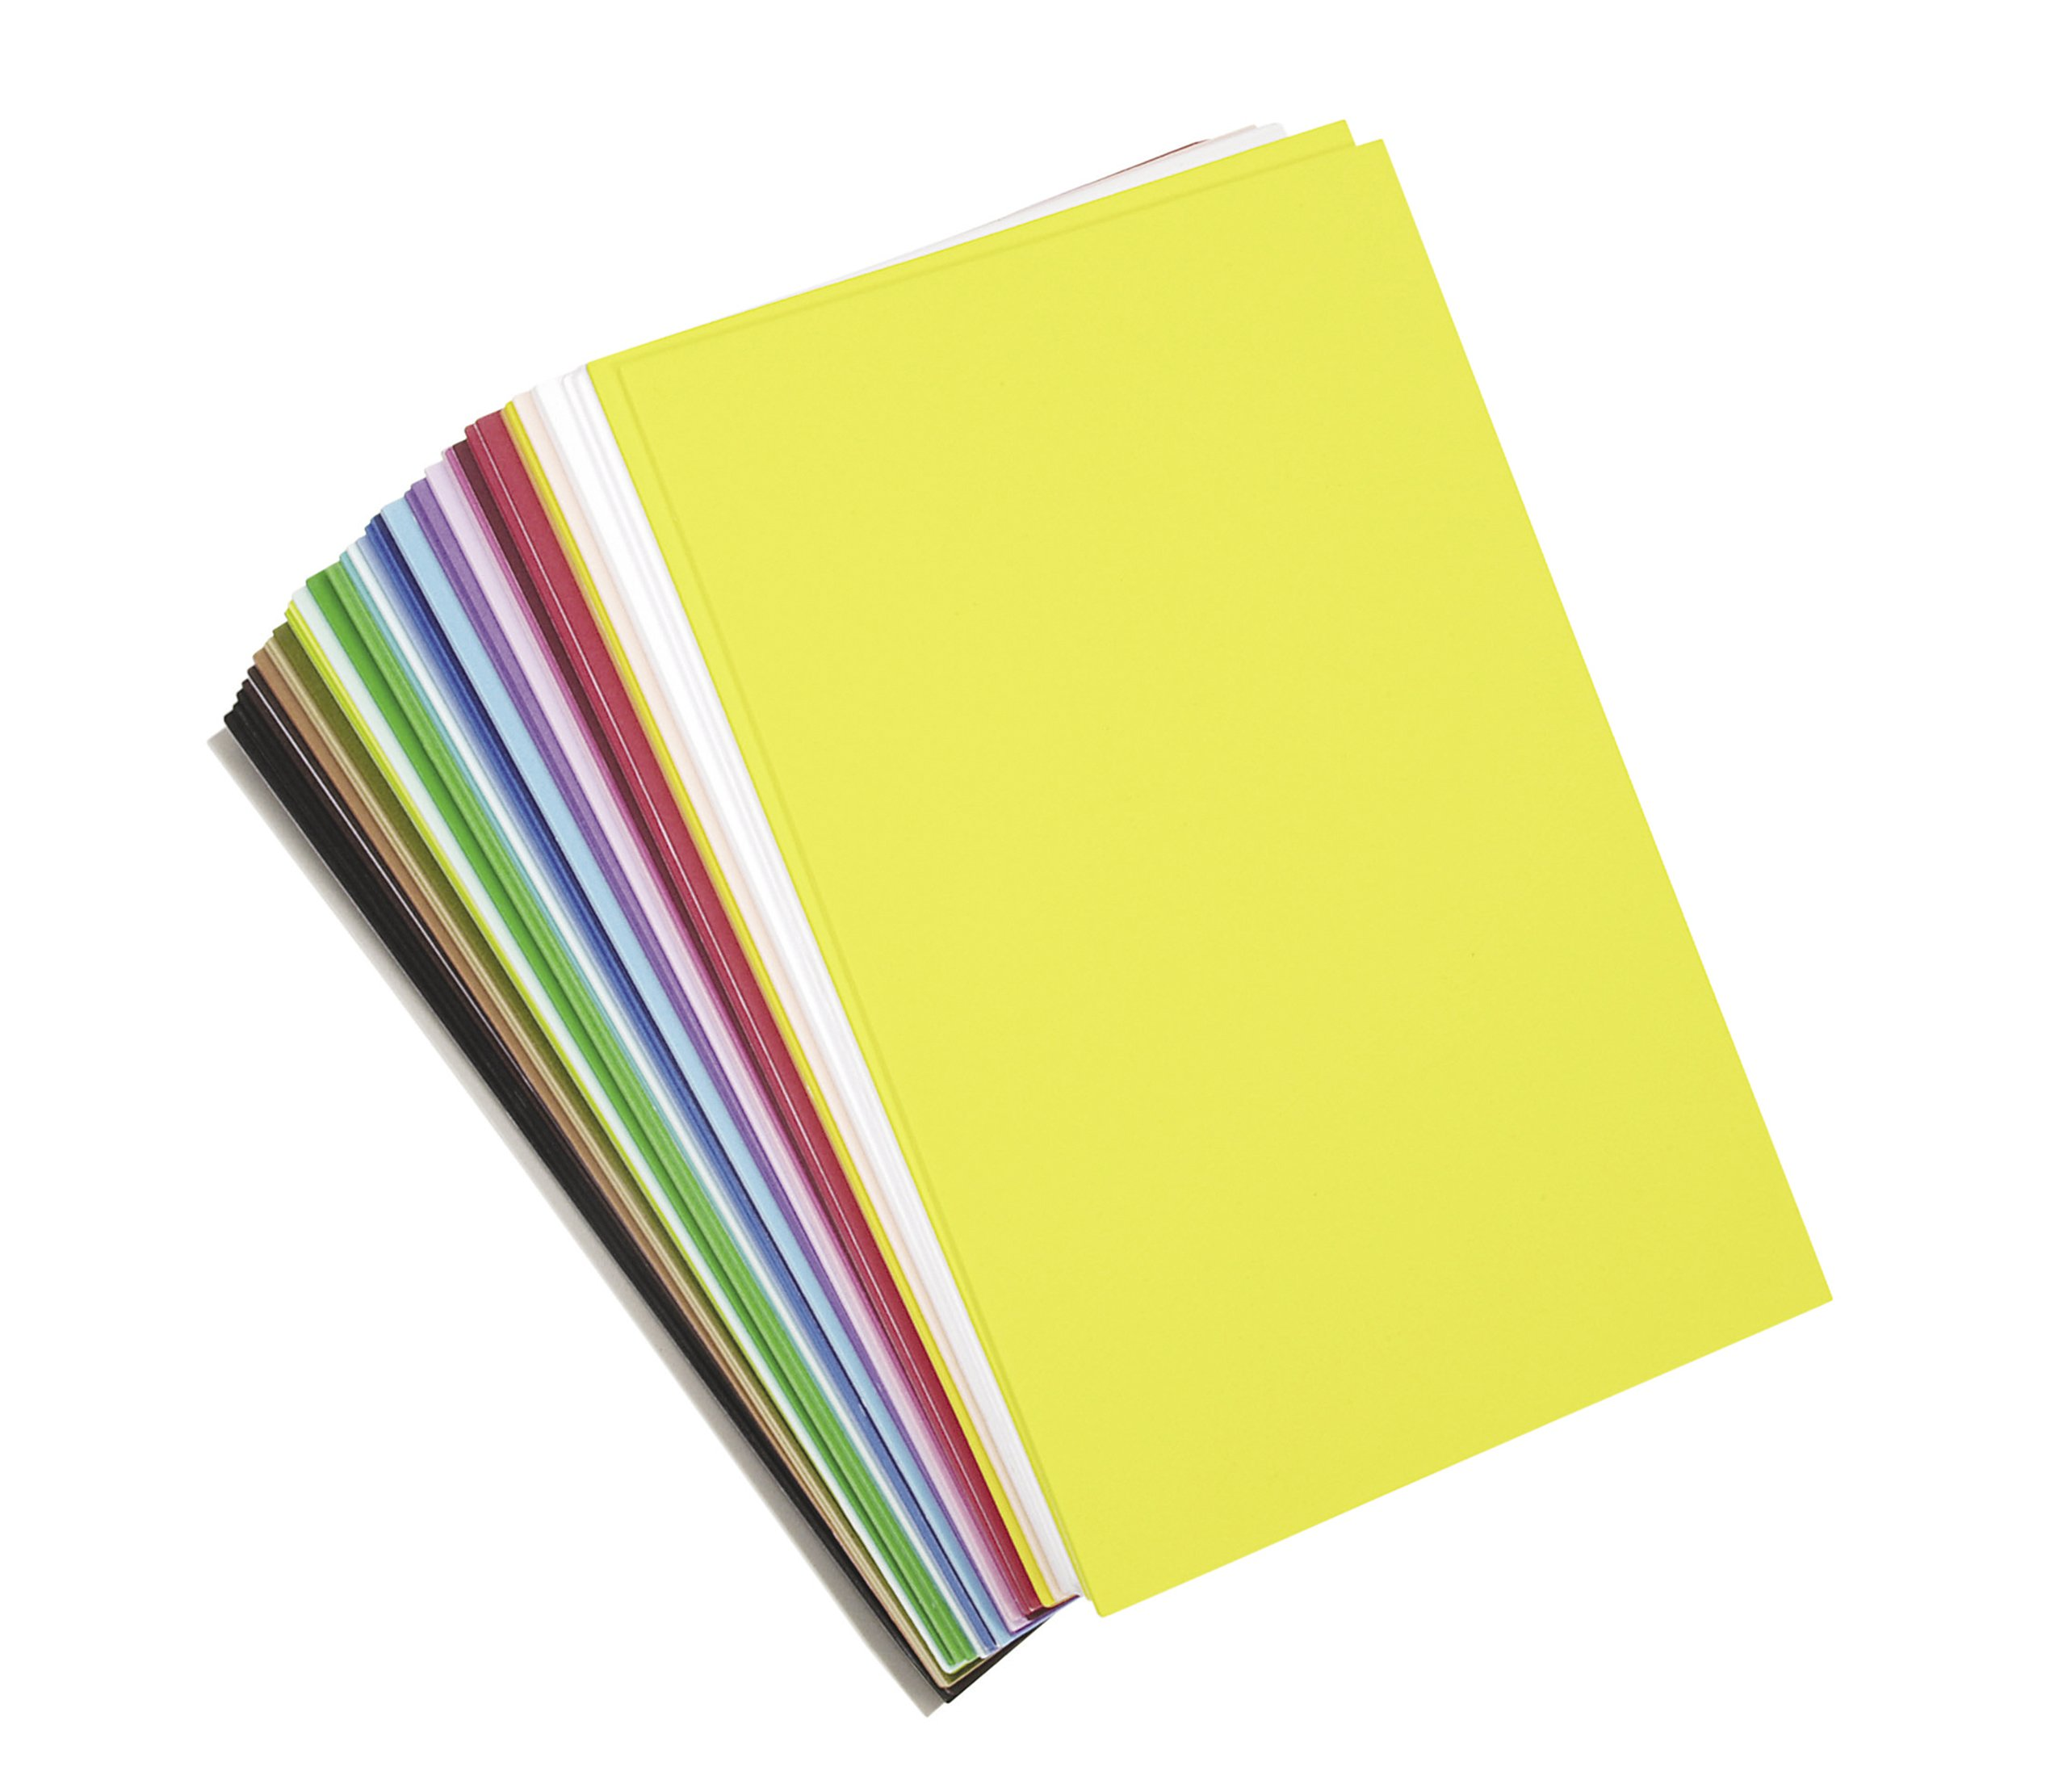 Darice Foamies Foam Sheets Multipack – Assorted Vibrant Colors – Great for Craft Projects with Kids